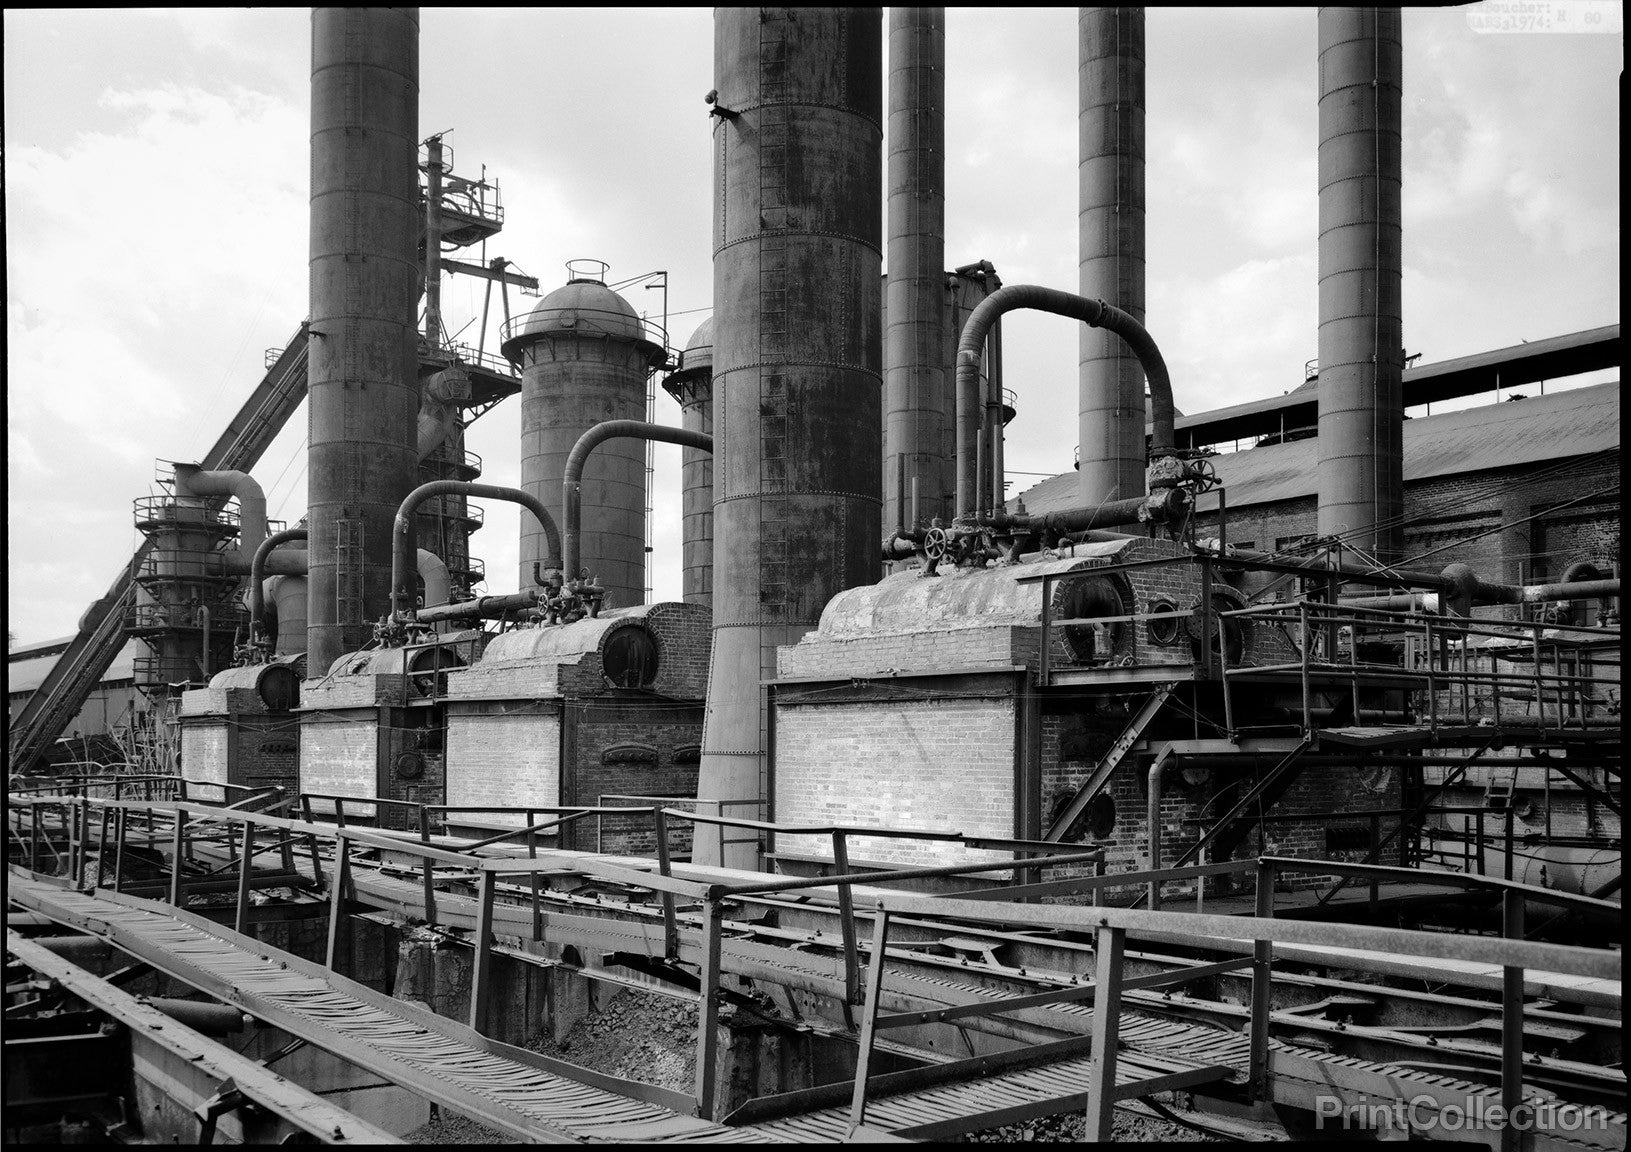 Print Collection - Steel Plant, General View of Boiler Units ...